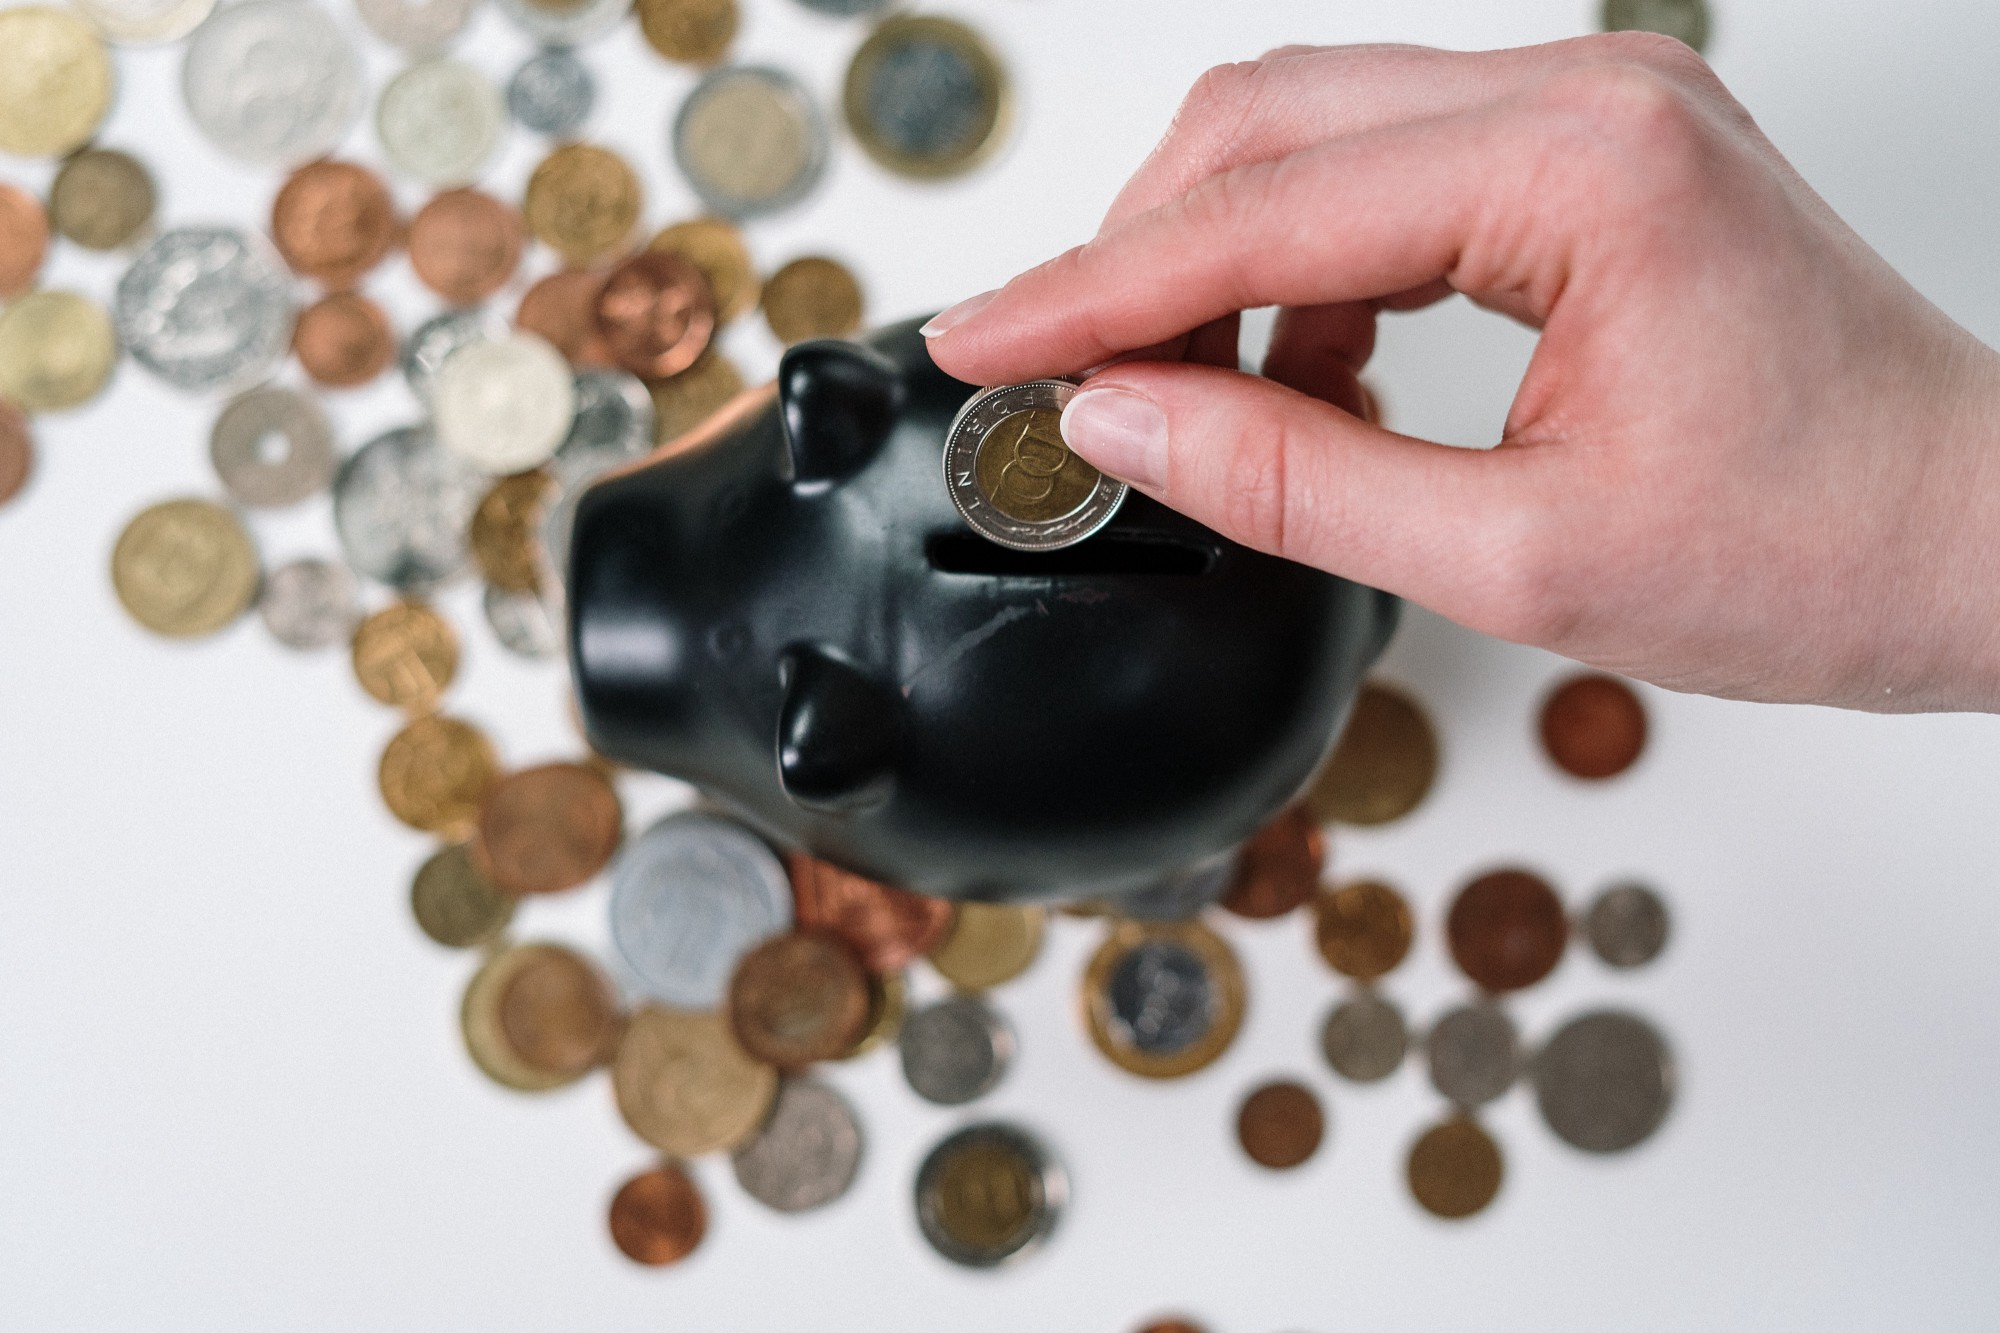 Person putting a coin in a piggy bank.